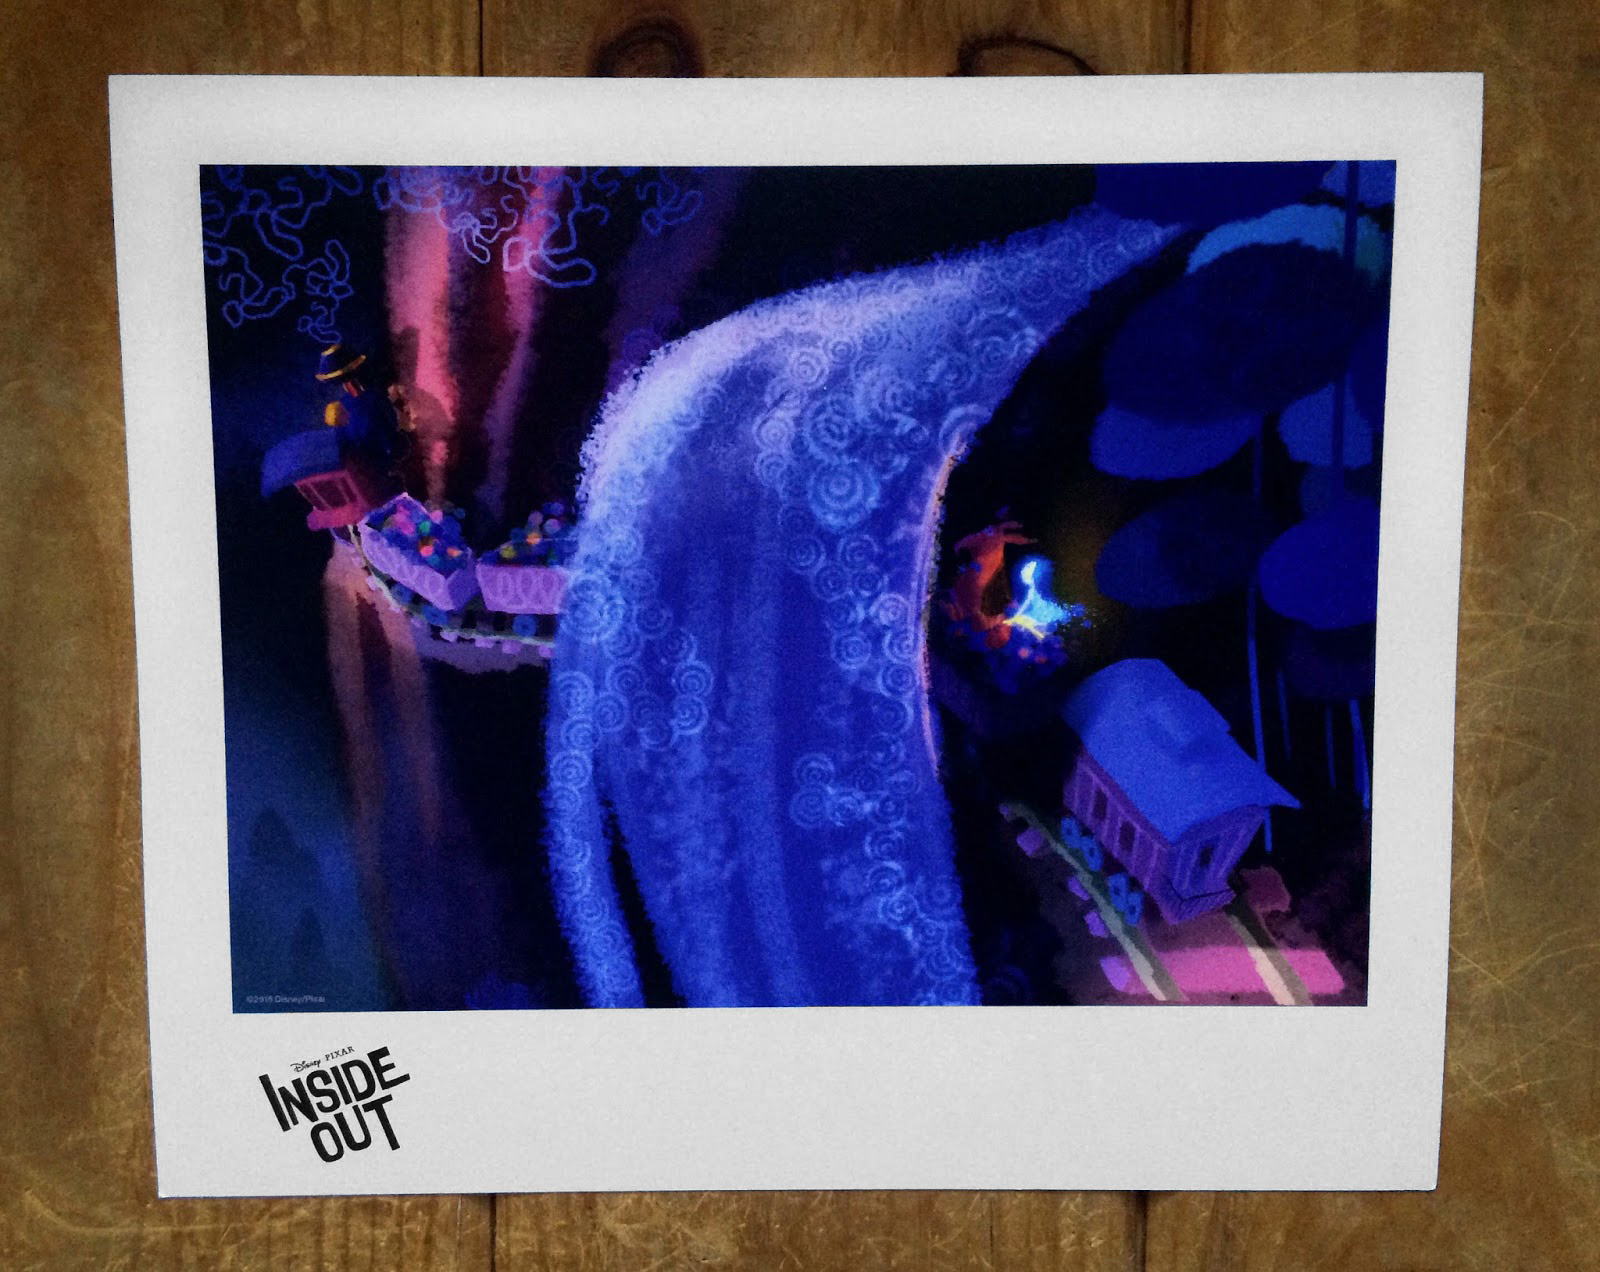 inside out lithograph print d23 expo